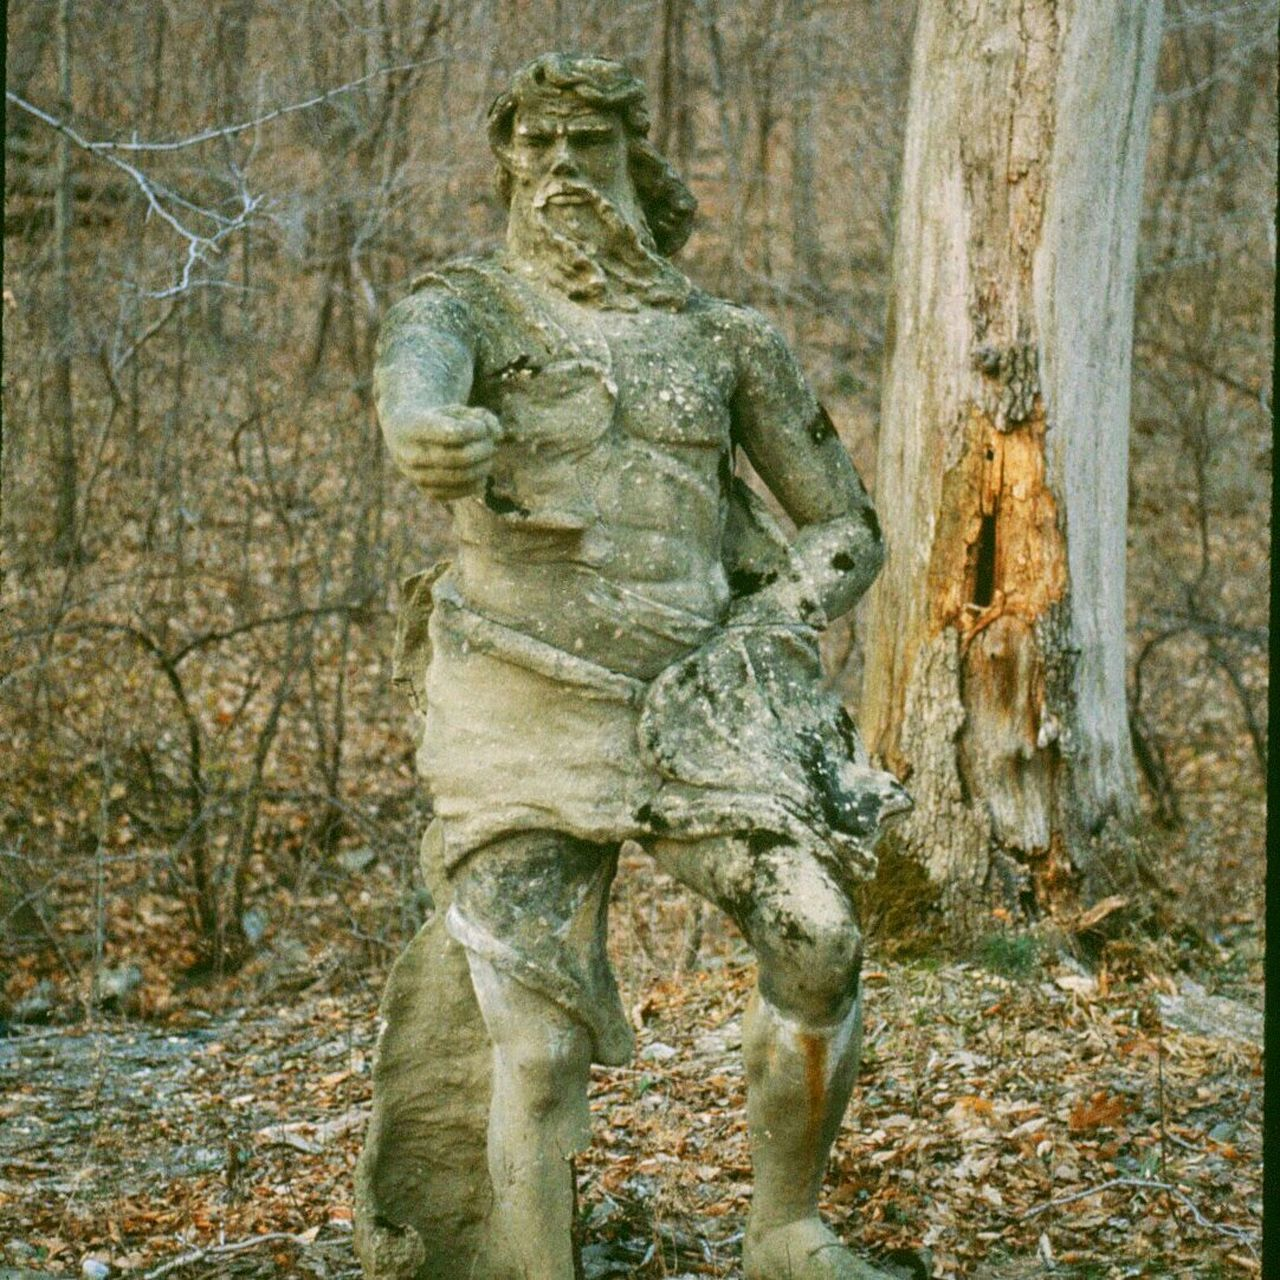 Check This Out Walking In The Woods I Was Surprised Statue In The Woods Expressive Sculpture Stone Sculpture Statue Of Zeus Very Cool ✌